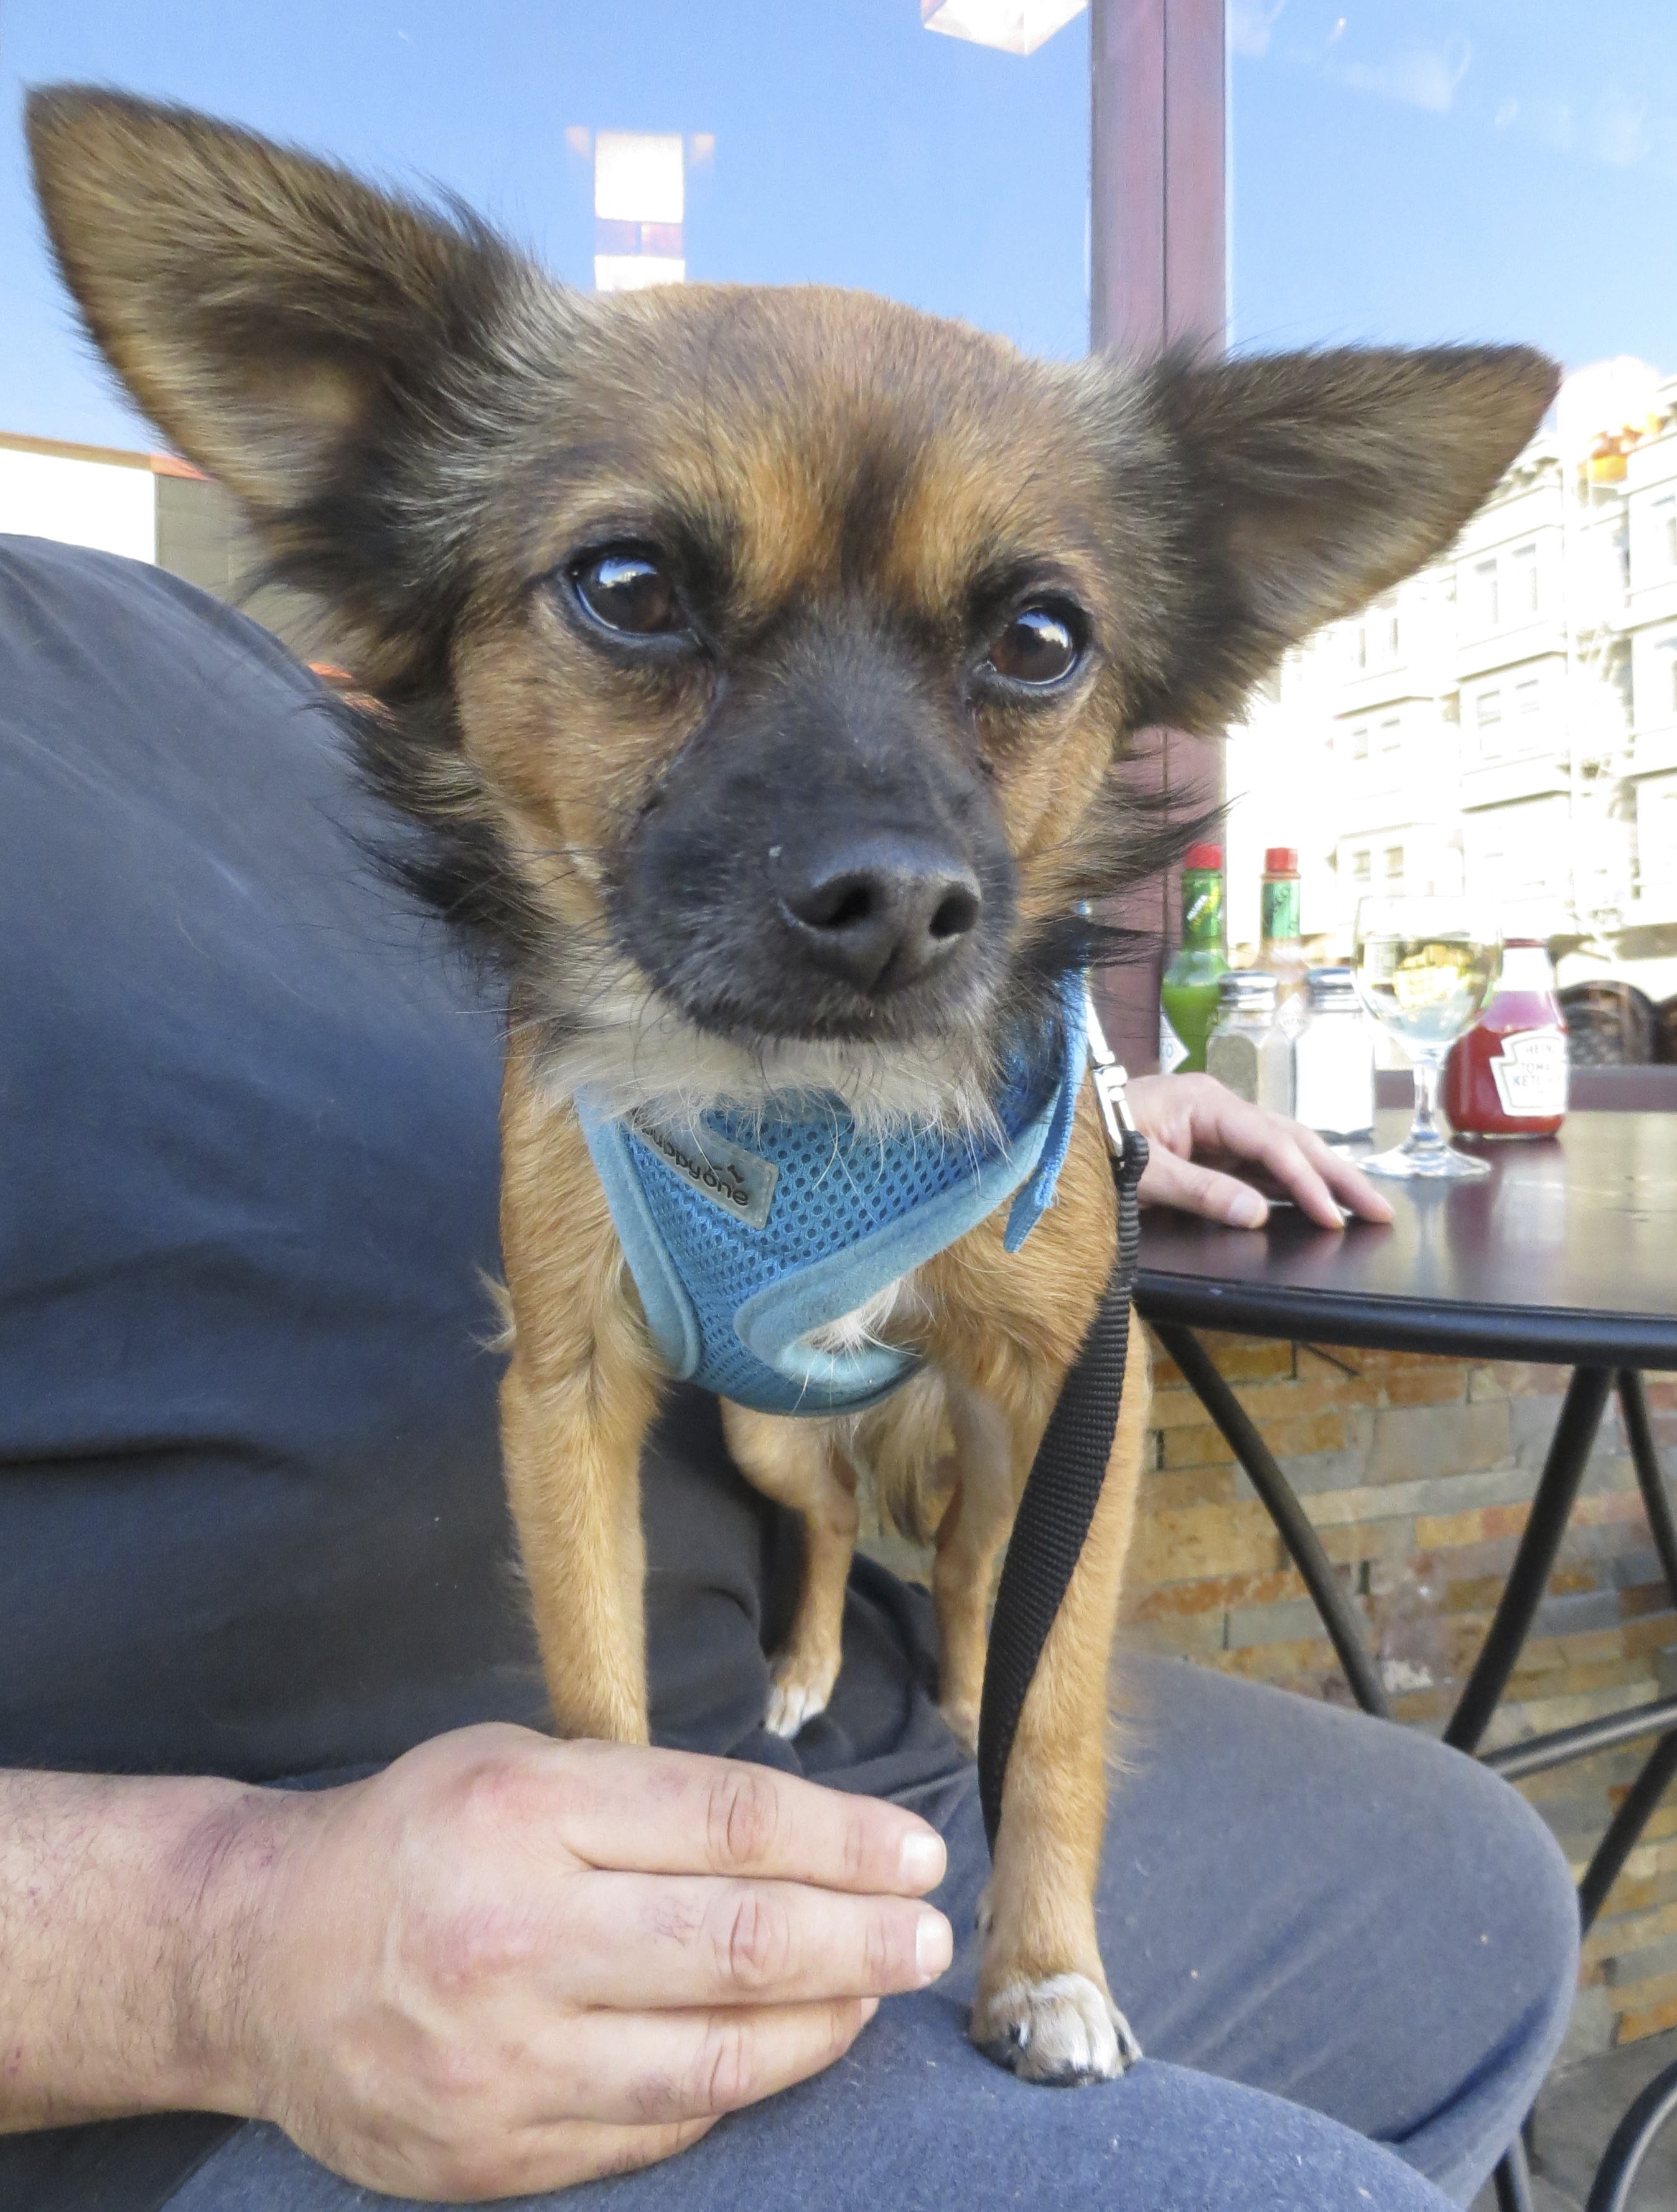 Chuhuahua/Pomeranian Mix With Hilariously Huge Ears